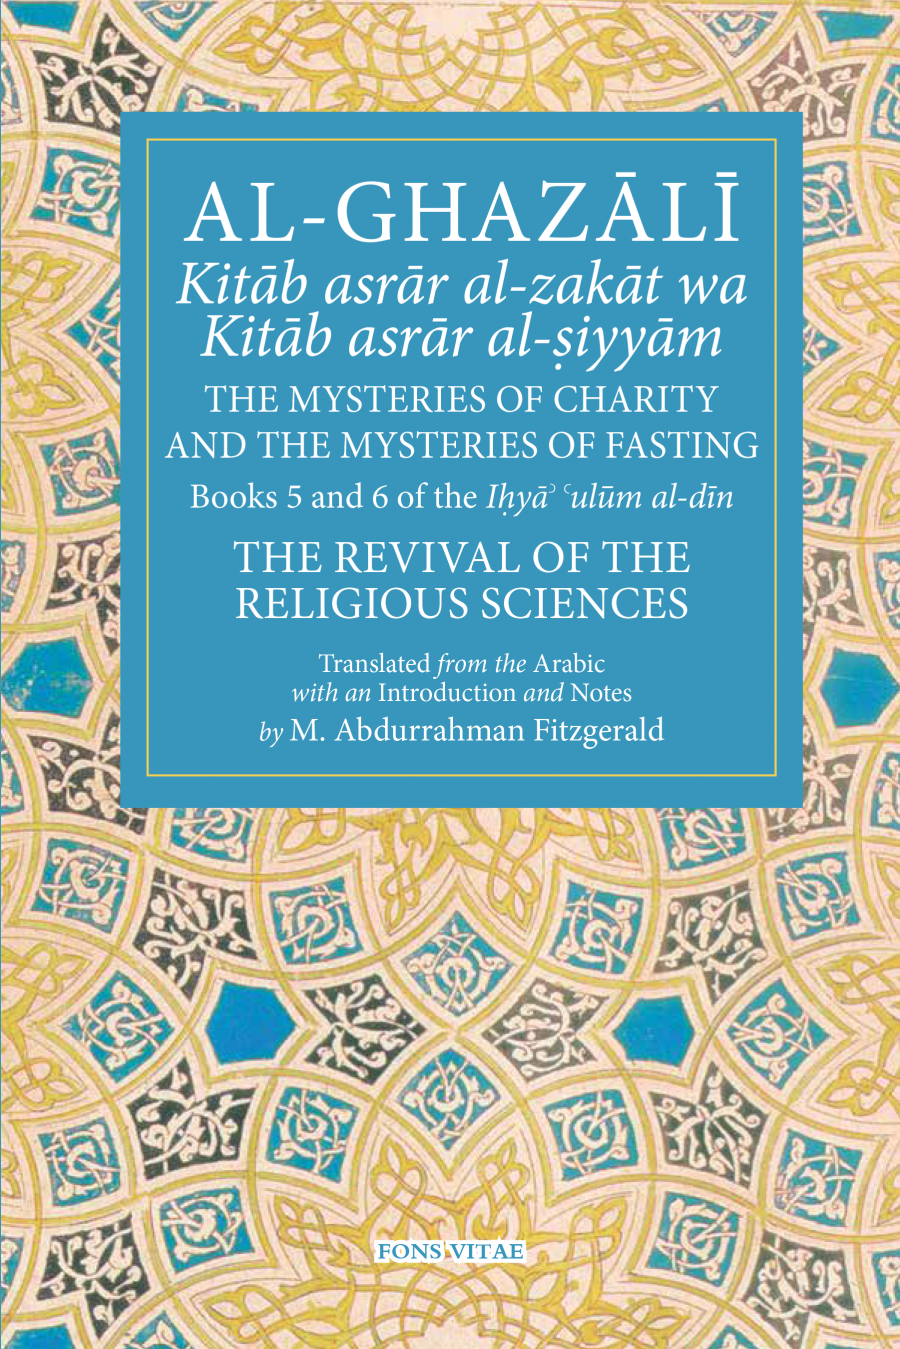 Ghazali Book Set 5 & 6: The Mysteries of Charity & Fasting - Adult